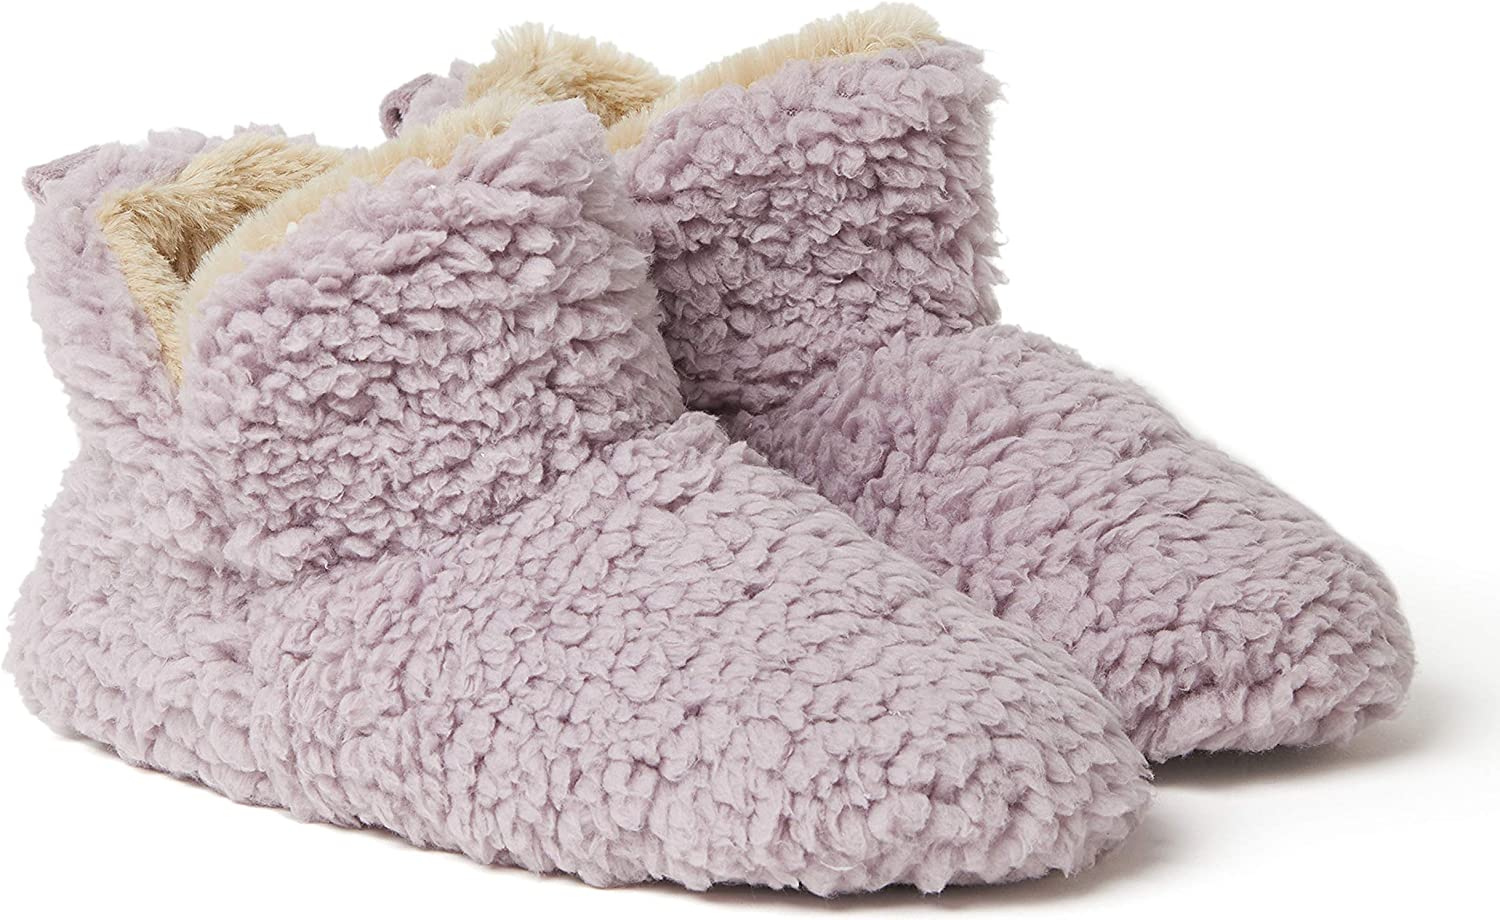 DEARFOAMS $34 SHERPA BOOTIE SLIPPERS SLEET GRAY WOMEN/'S SIZE XL 11-12 NWT